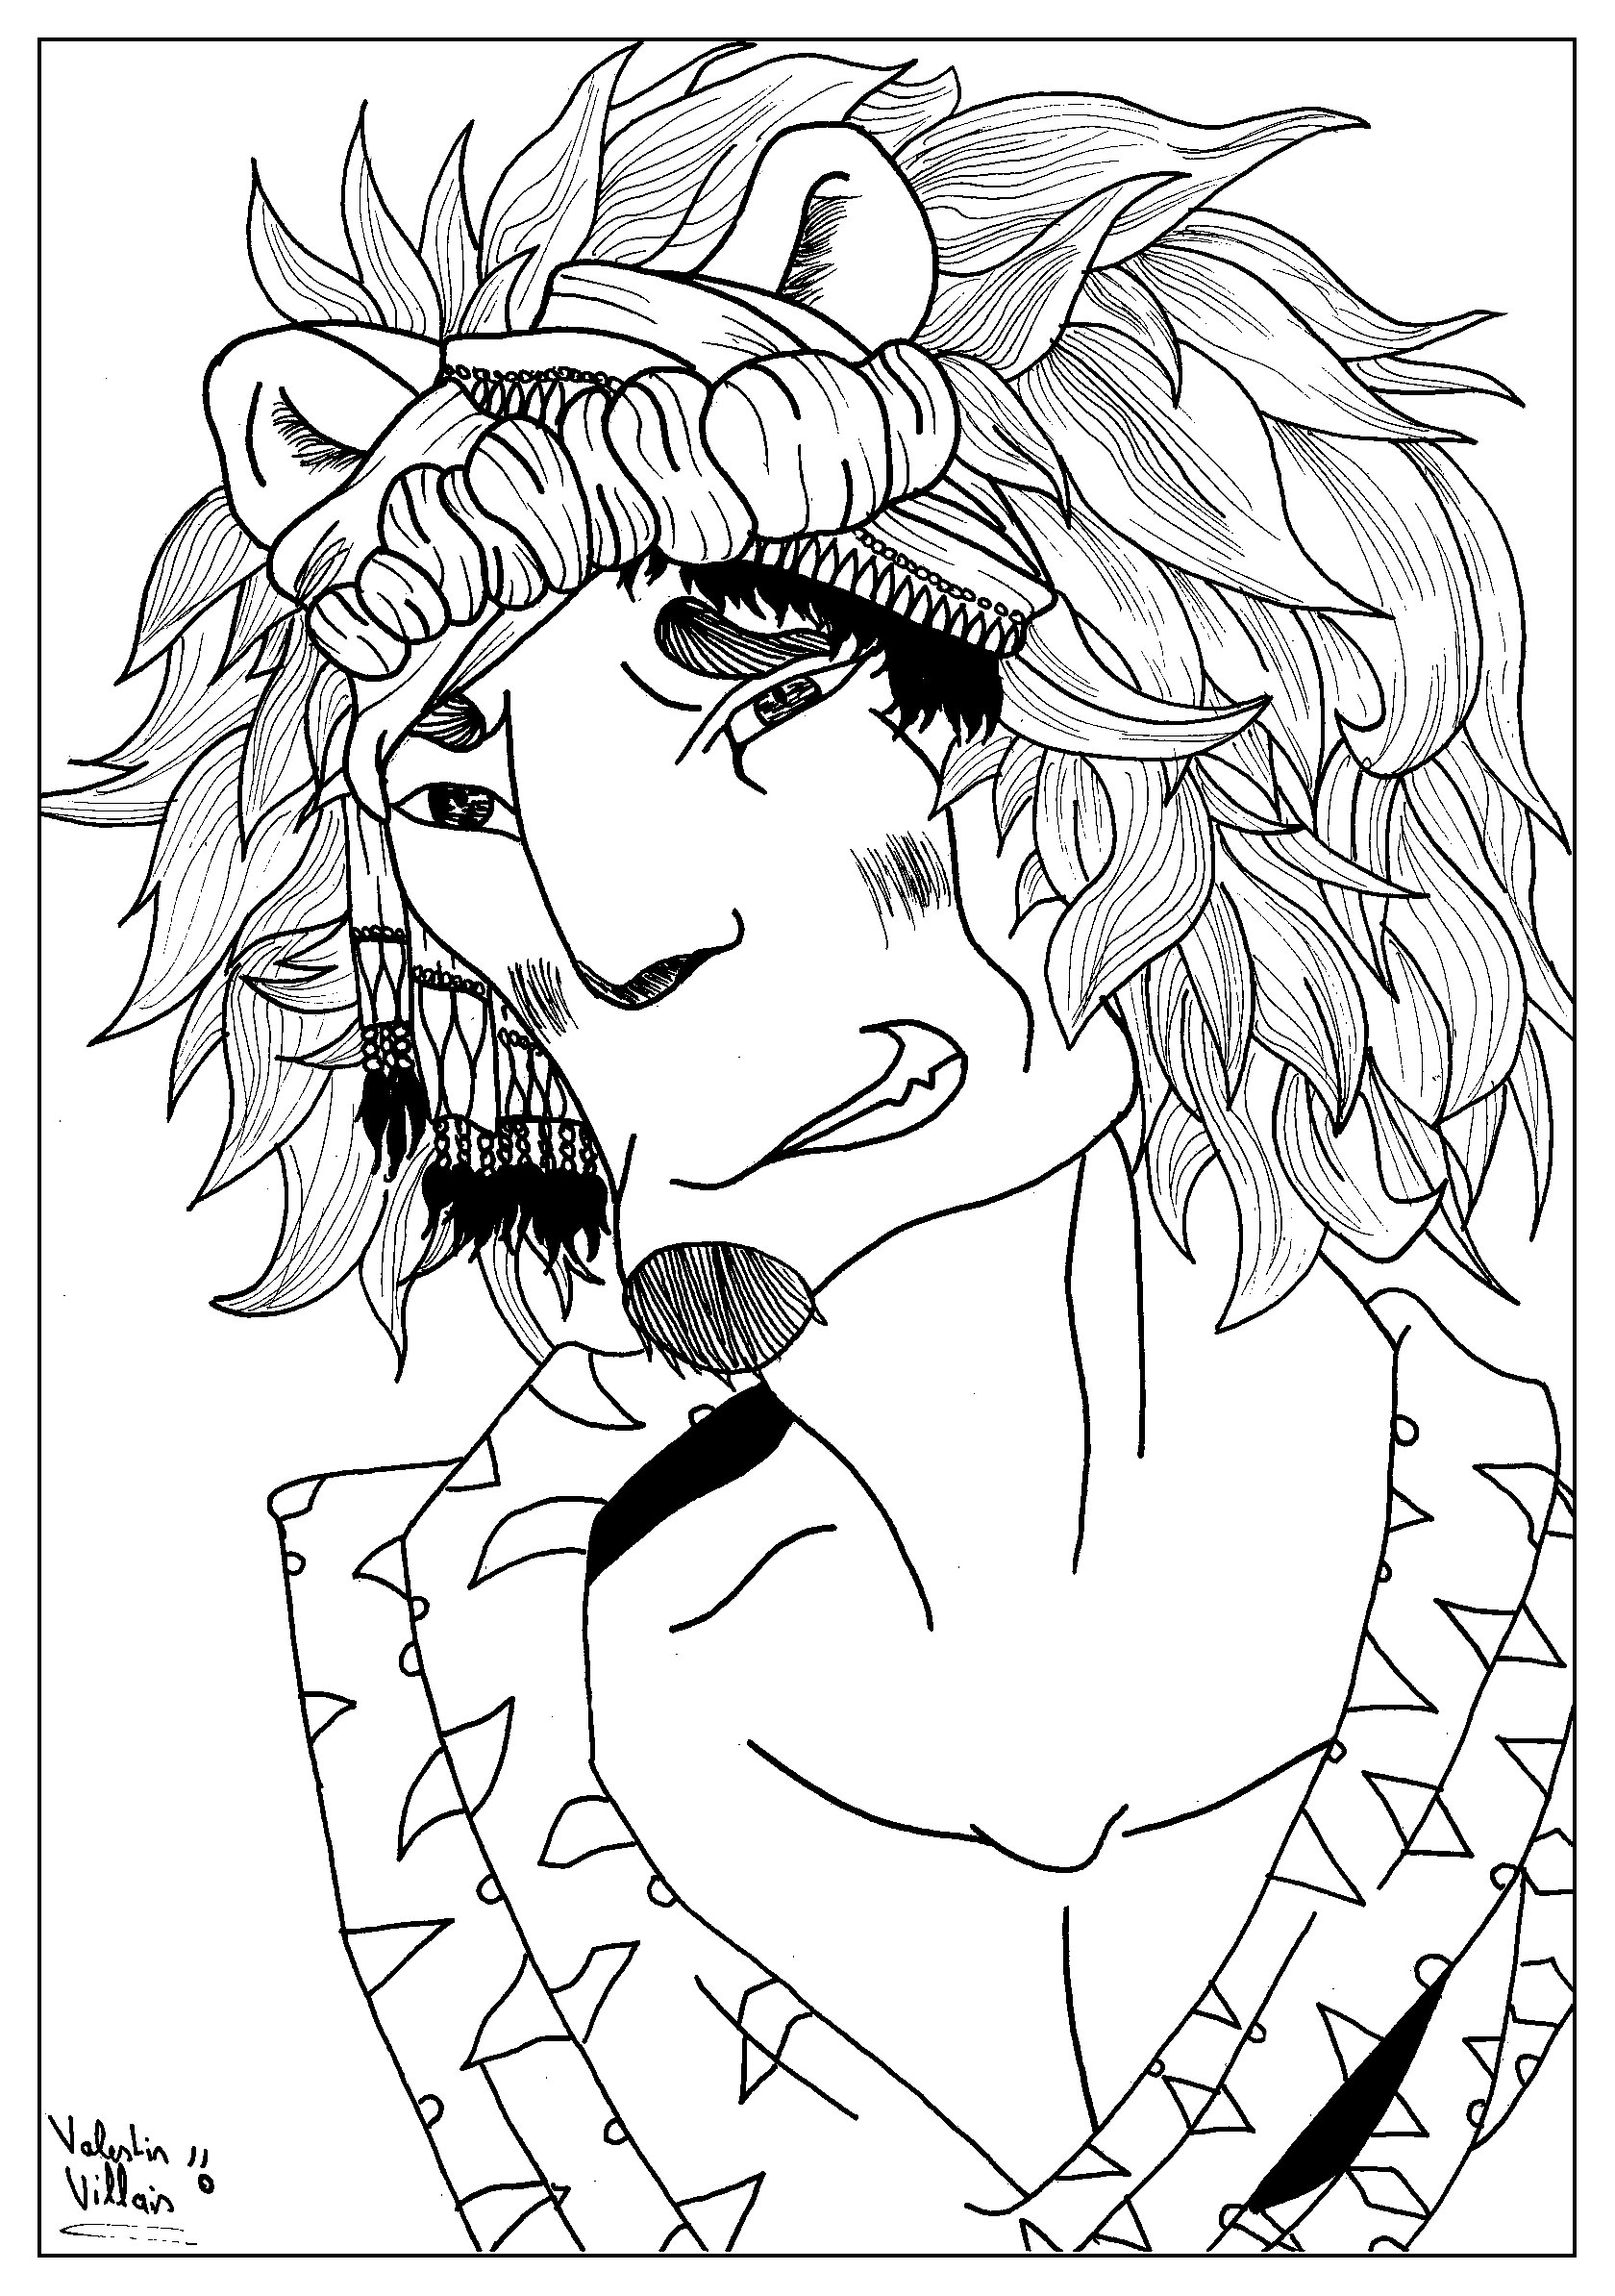 Coloring page of a lion man